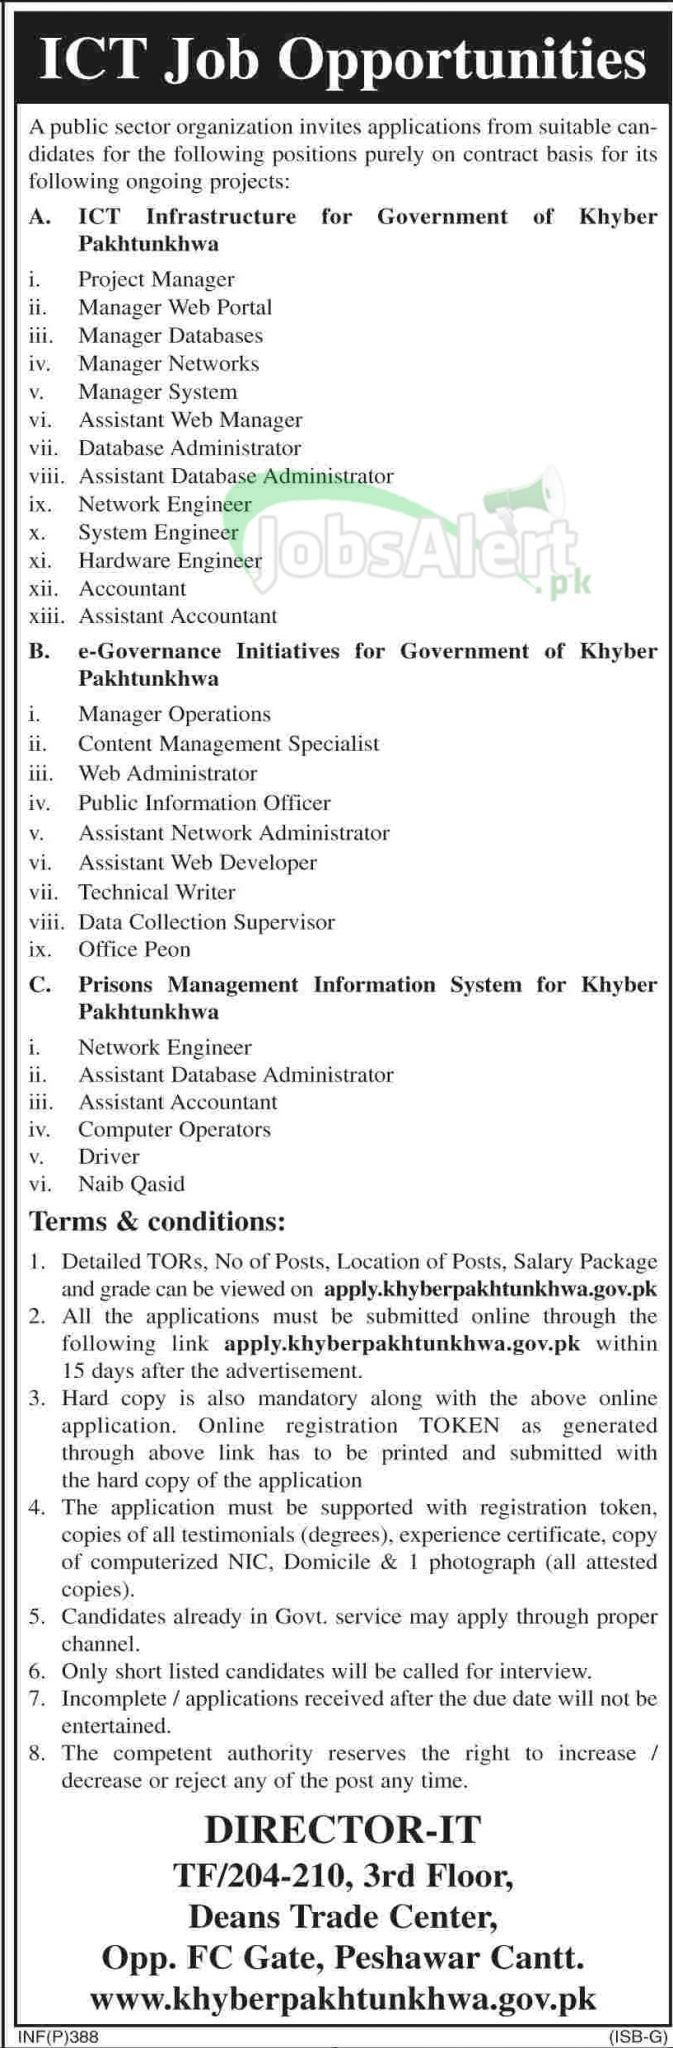 Government Jobs 2014 in Government of Khyber Pakhtunkhwa